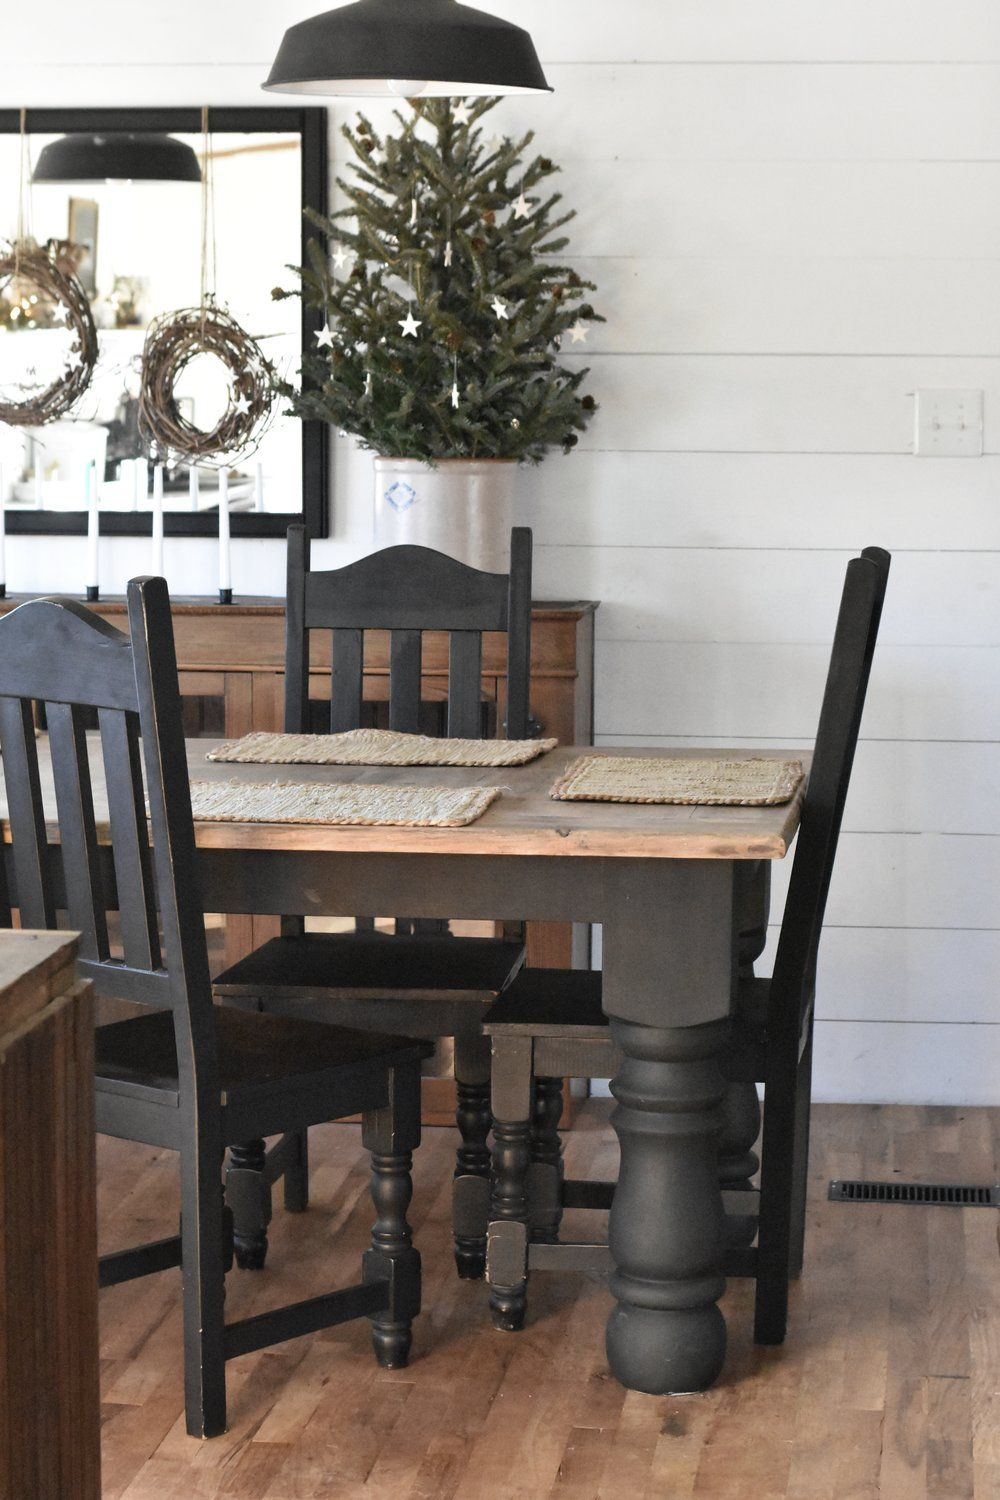 Rustic Farmhouse Christmas Dining Room Table And Chairs Painted Black Paired With Wood Floors